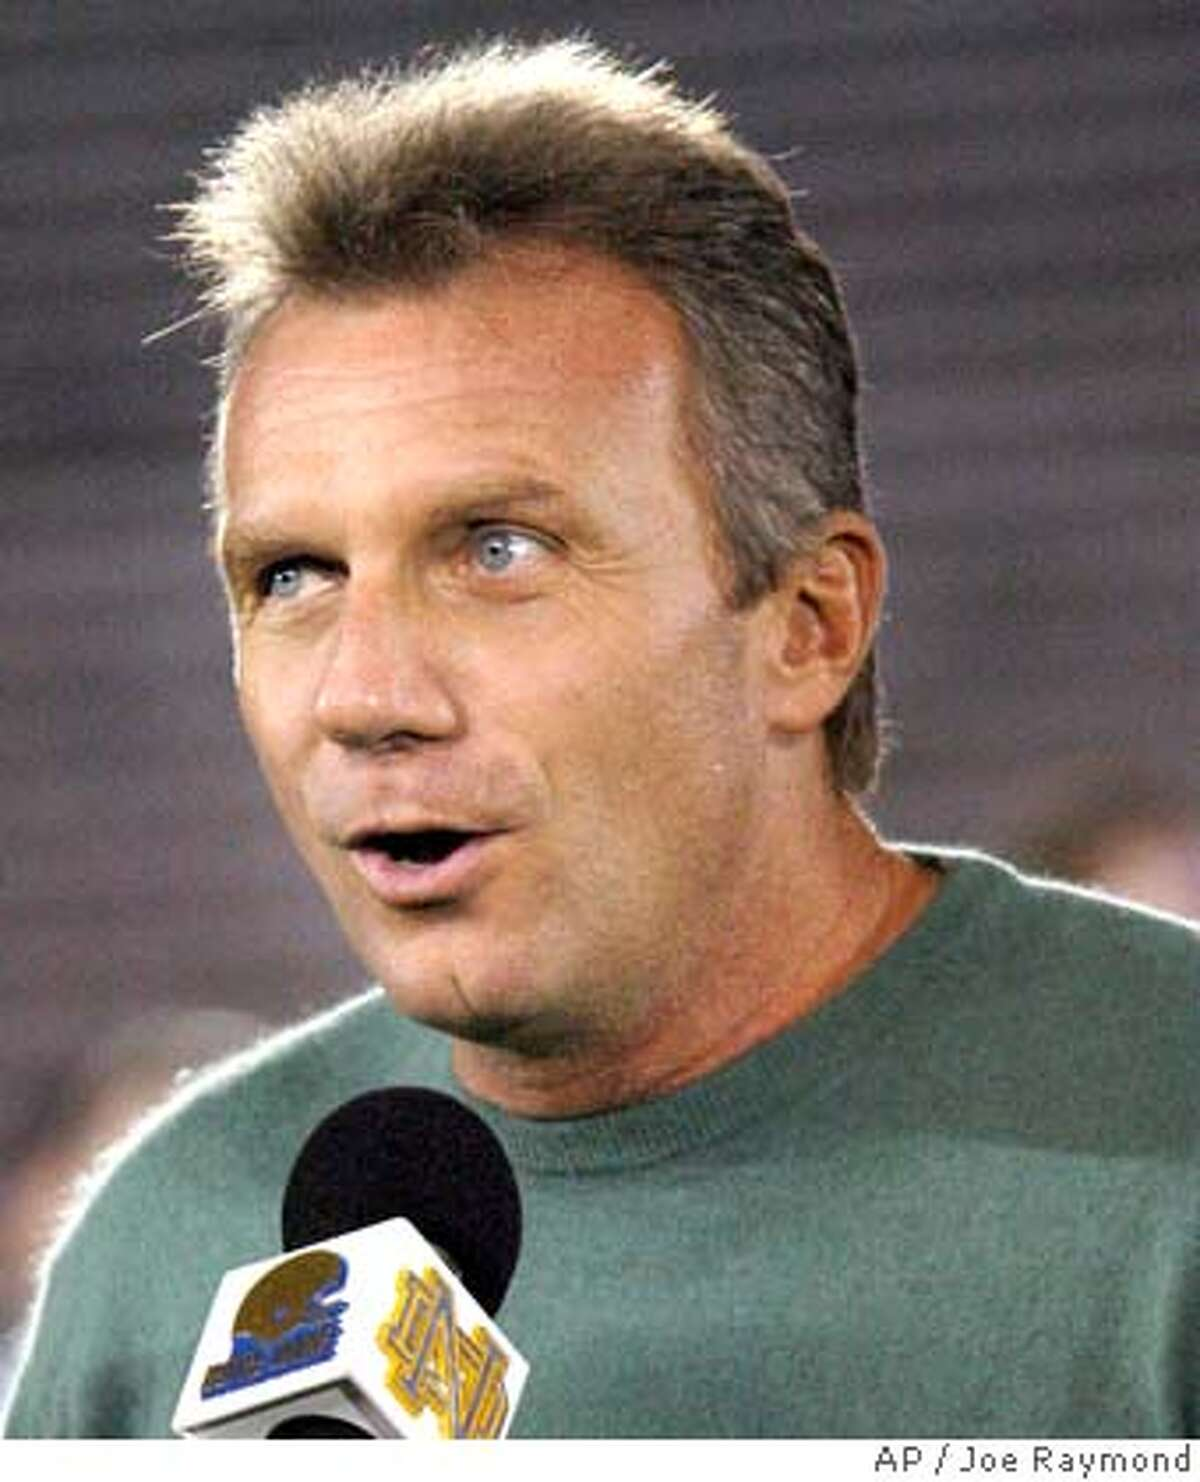 Former Notre Dame quarterback Joe Montana addresses the pep rally at Notre Dame Stadium Friday Oct. 14, 2005, in South Bend, Ind. Notre Dame plays No. 1-ranked Southern California Trojans, Saturday. (AP Photo/Joe Raymond) Ran on: 10-15-2005 Joe Montana was a speaker at the Notre Dame pep rally. Ran on: 10-15-2005 Joe Montana was a speaker at the Notre Dame pep rally.